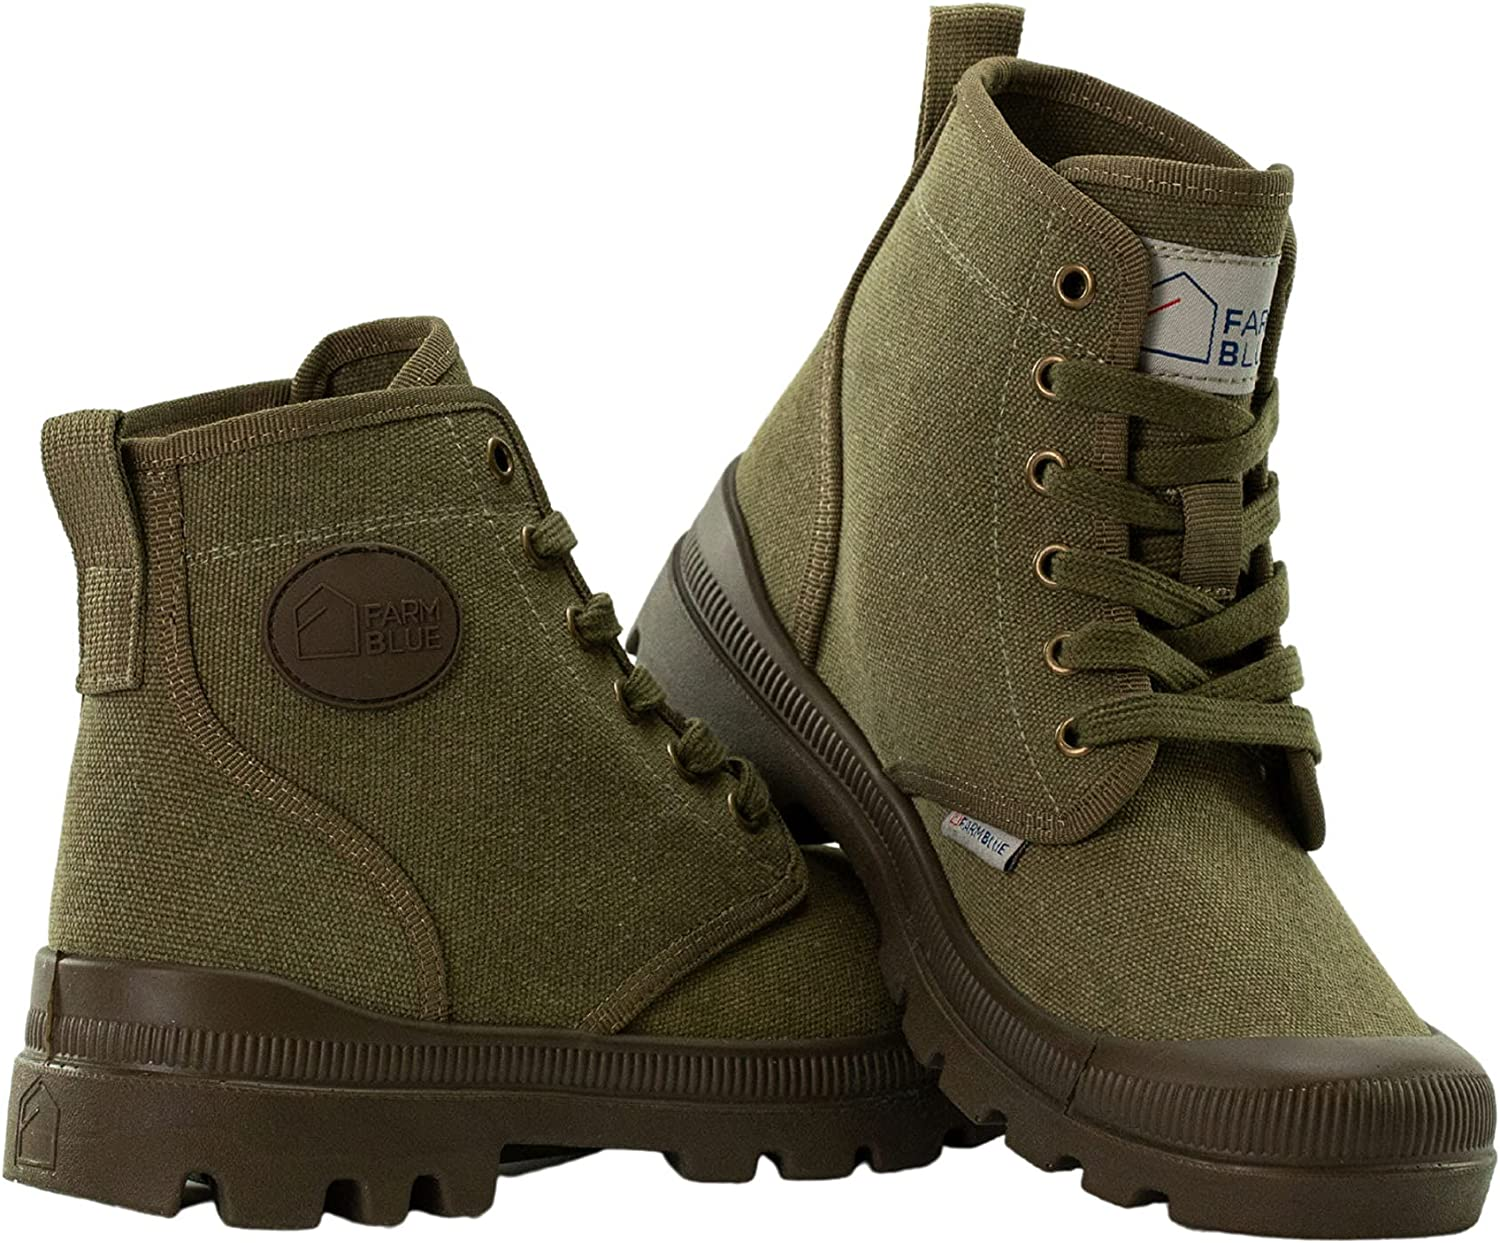 Farm Max 57% OFF Blue Max 47% OFF Men's Ranger Boots - High for Top Shoes Men W Hiking